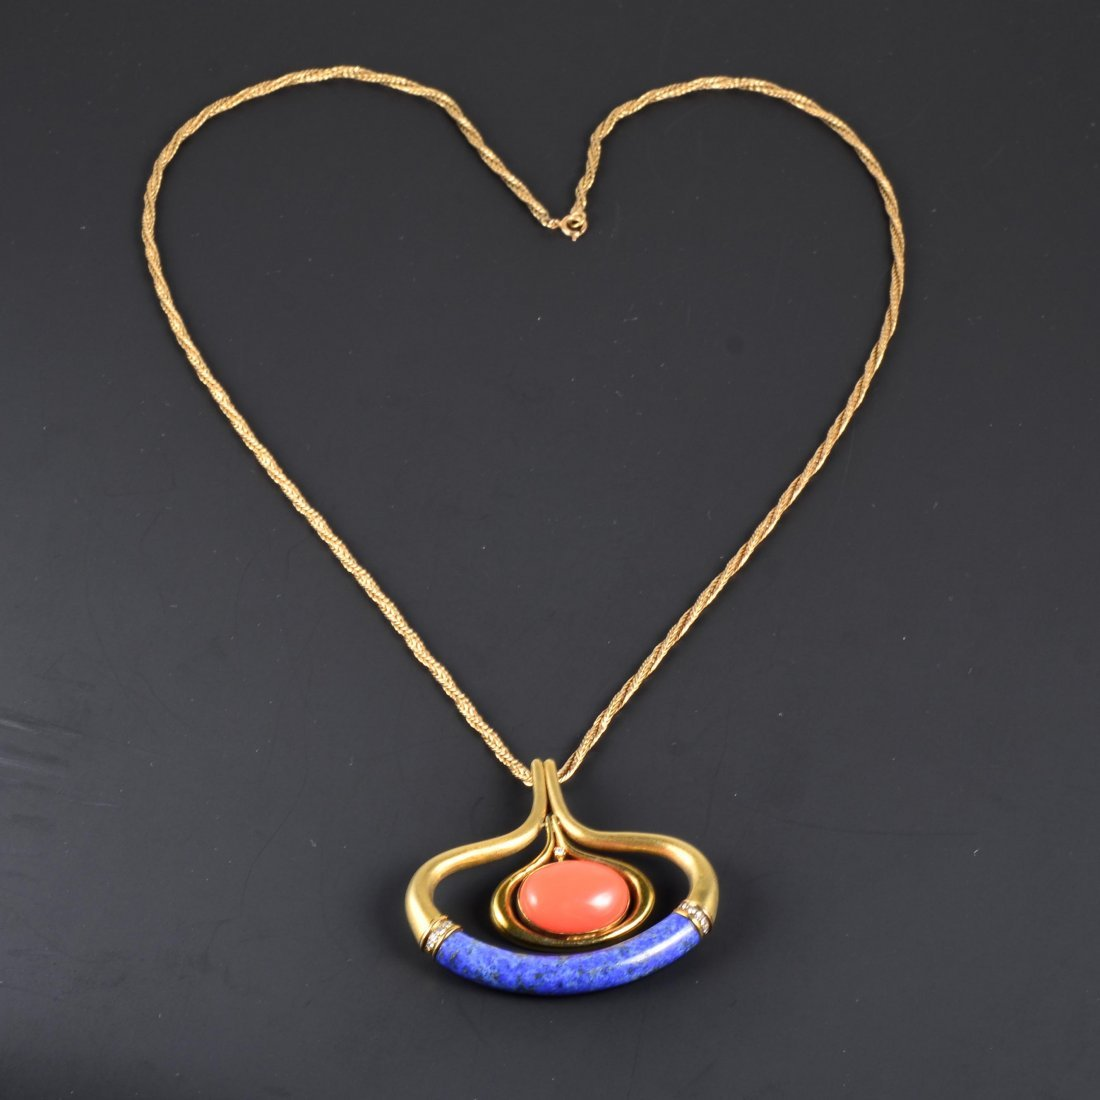 14K YG Necklace With Lapis Coral & Diamond Pendant